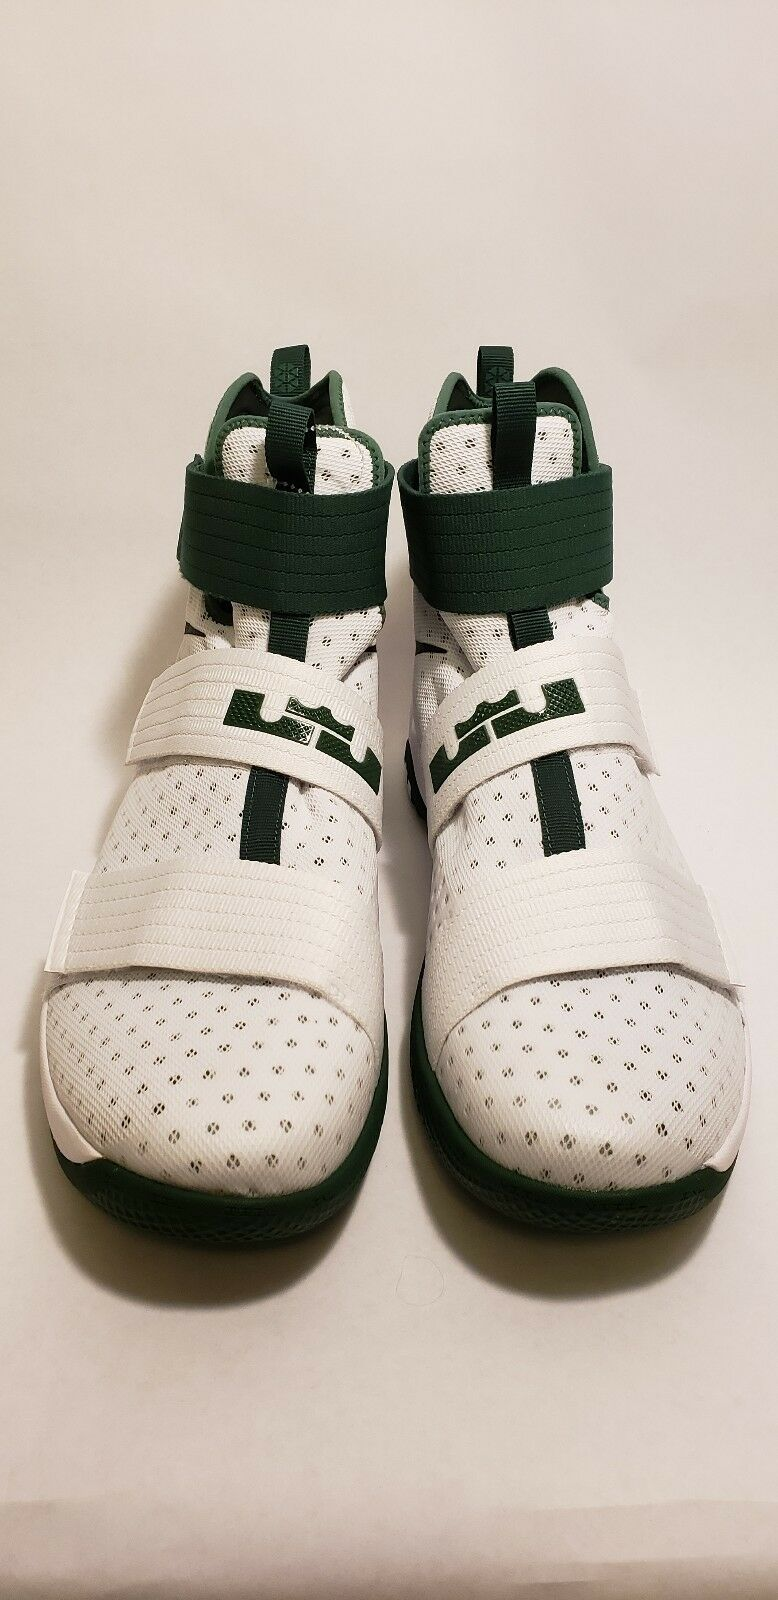 NEW NIKE LeBron James Soldier Ten White Green High Top Basketball shoes Size 17.5